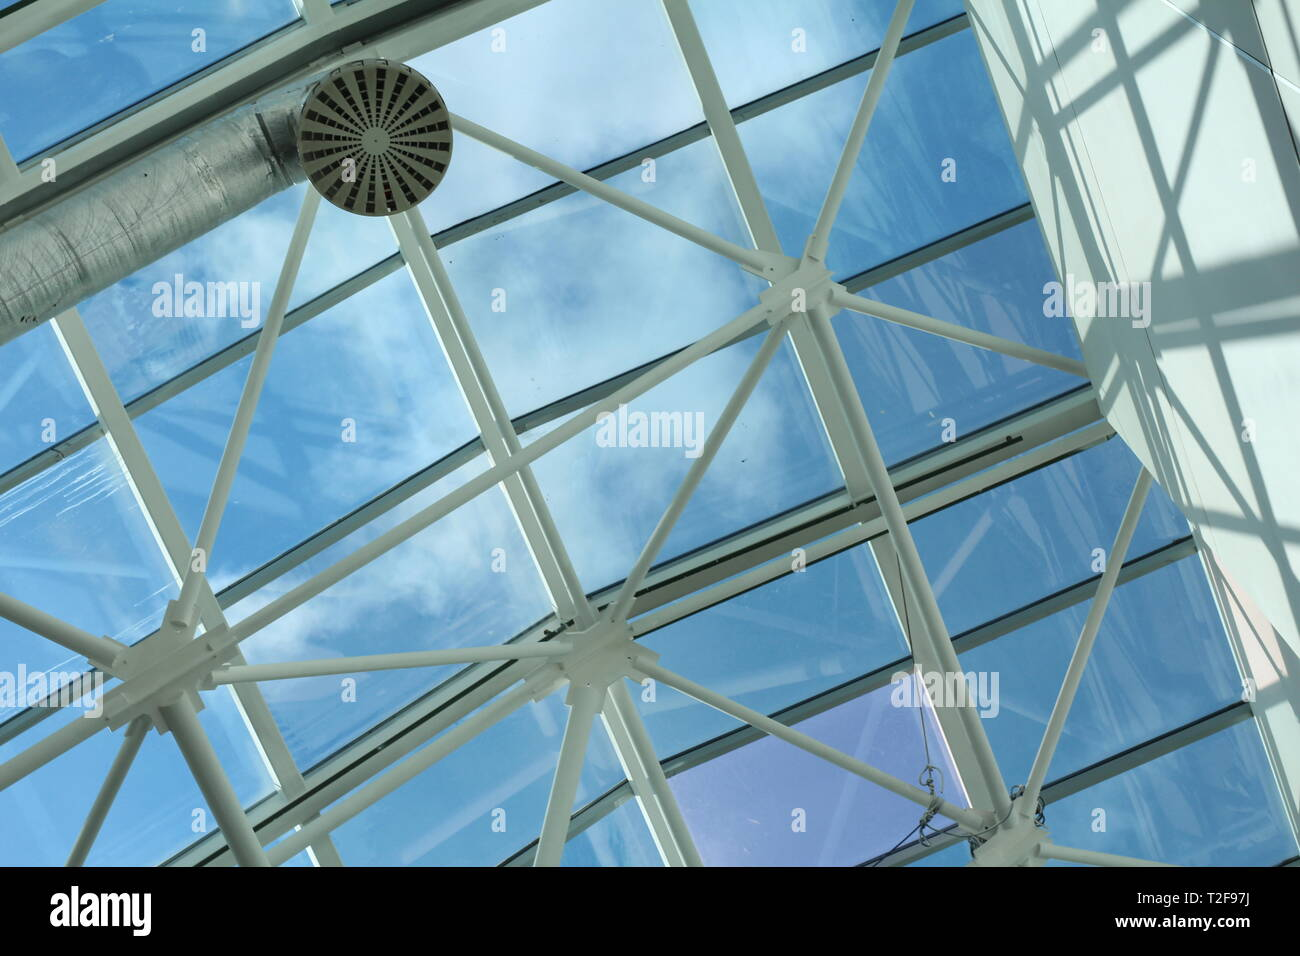 Glass roof in the business center. Metal and glass construction - architecture and design in a shopping center. - Stock Image